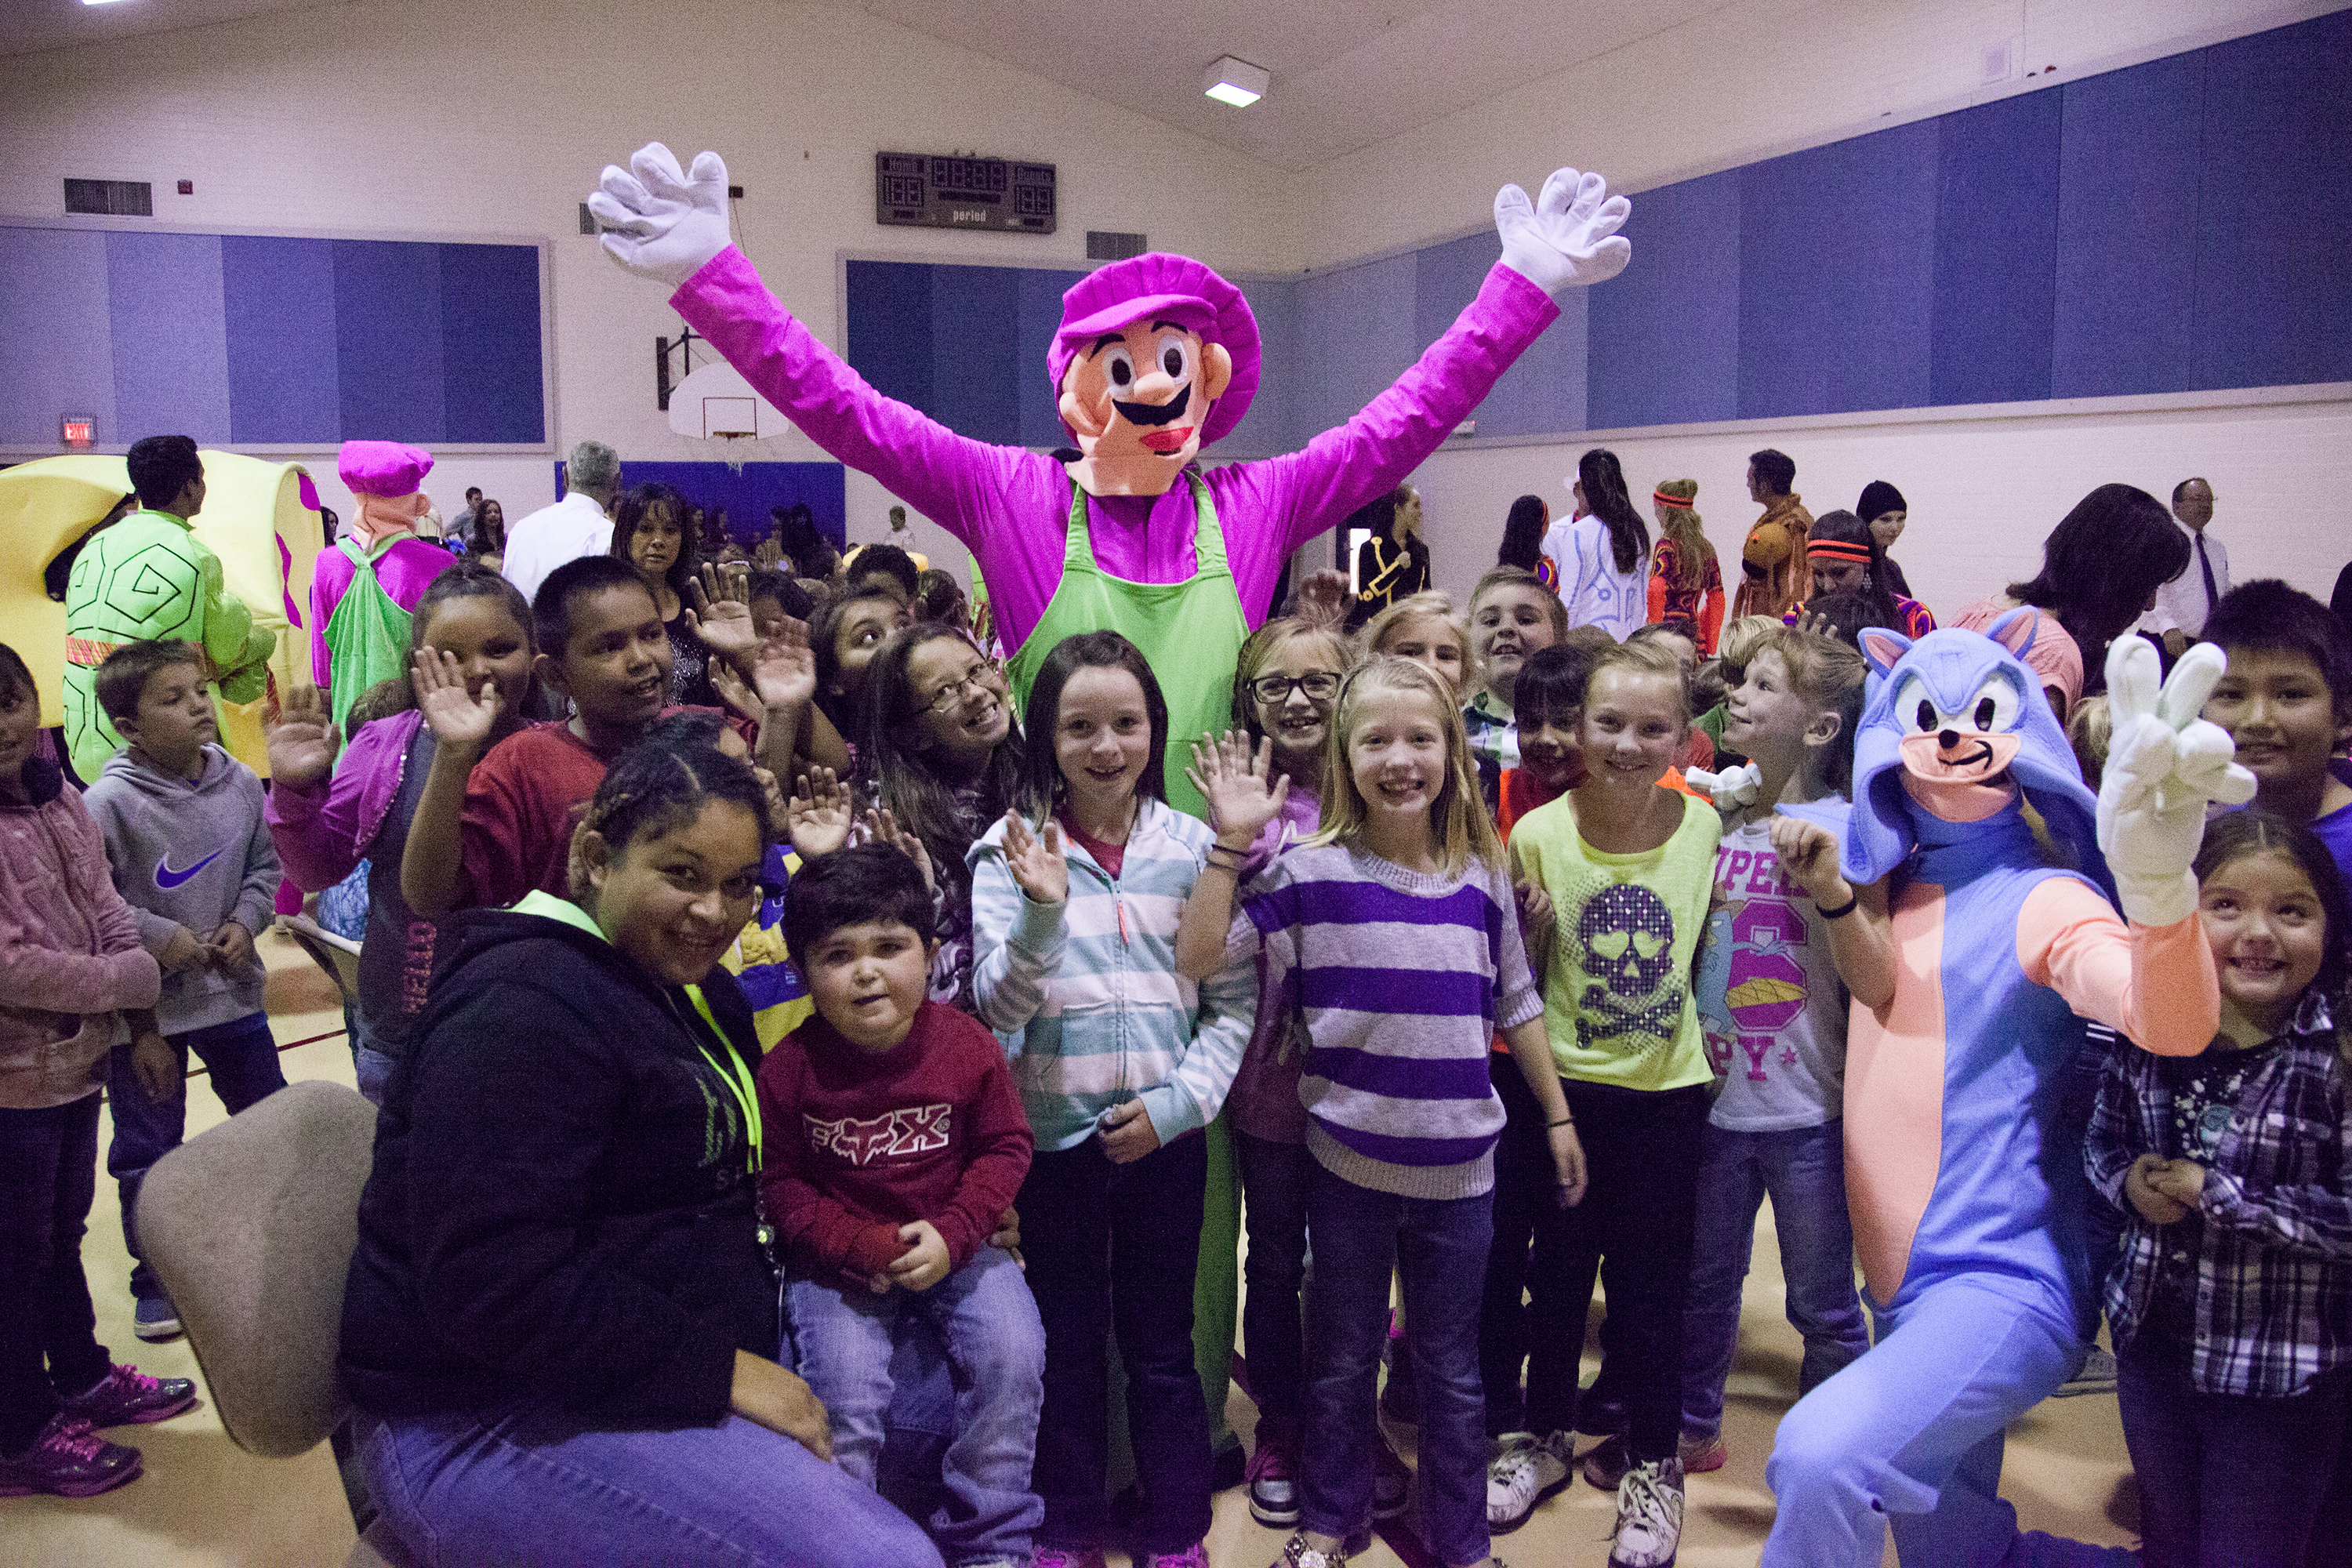 https://pam.byu.edu/wp-content/uploads/2015/02/2014-Oct-BDC-AZ-Tour-9-St-Johns-Elem-show-5.jpg